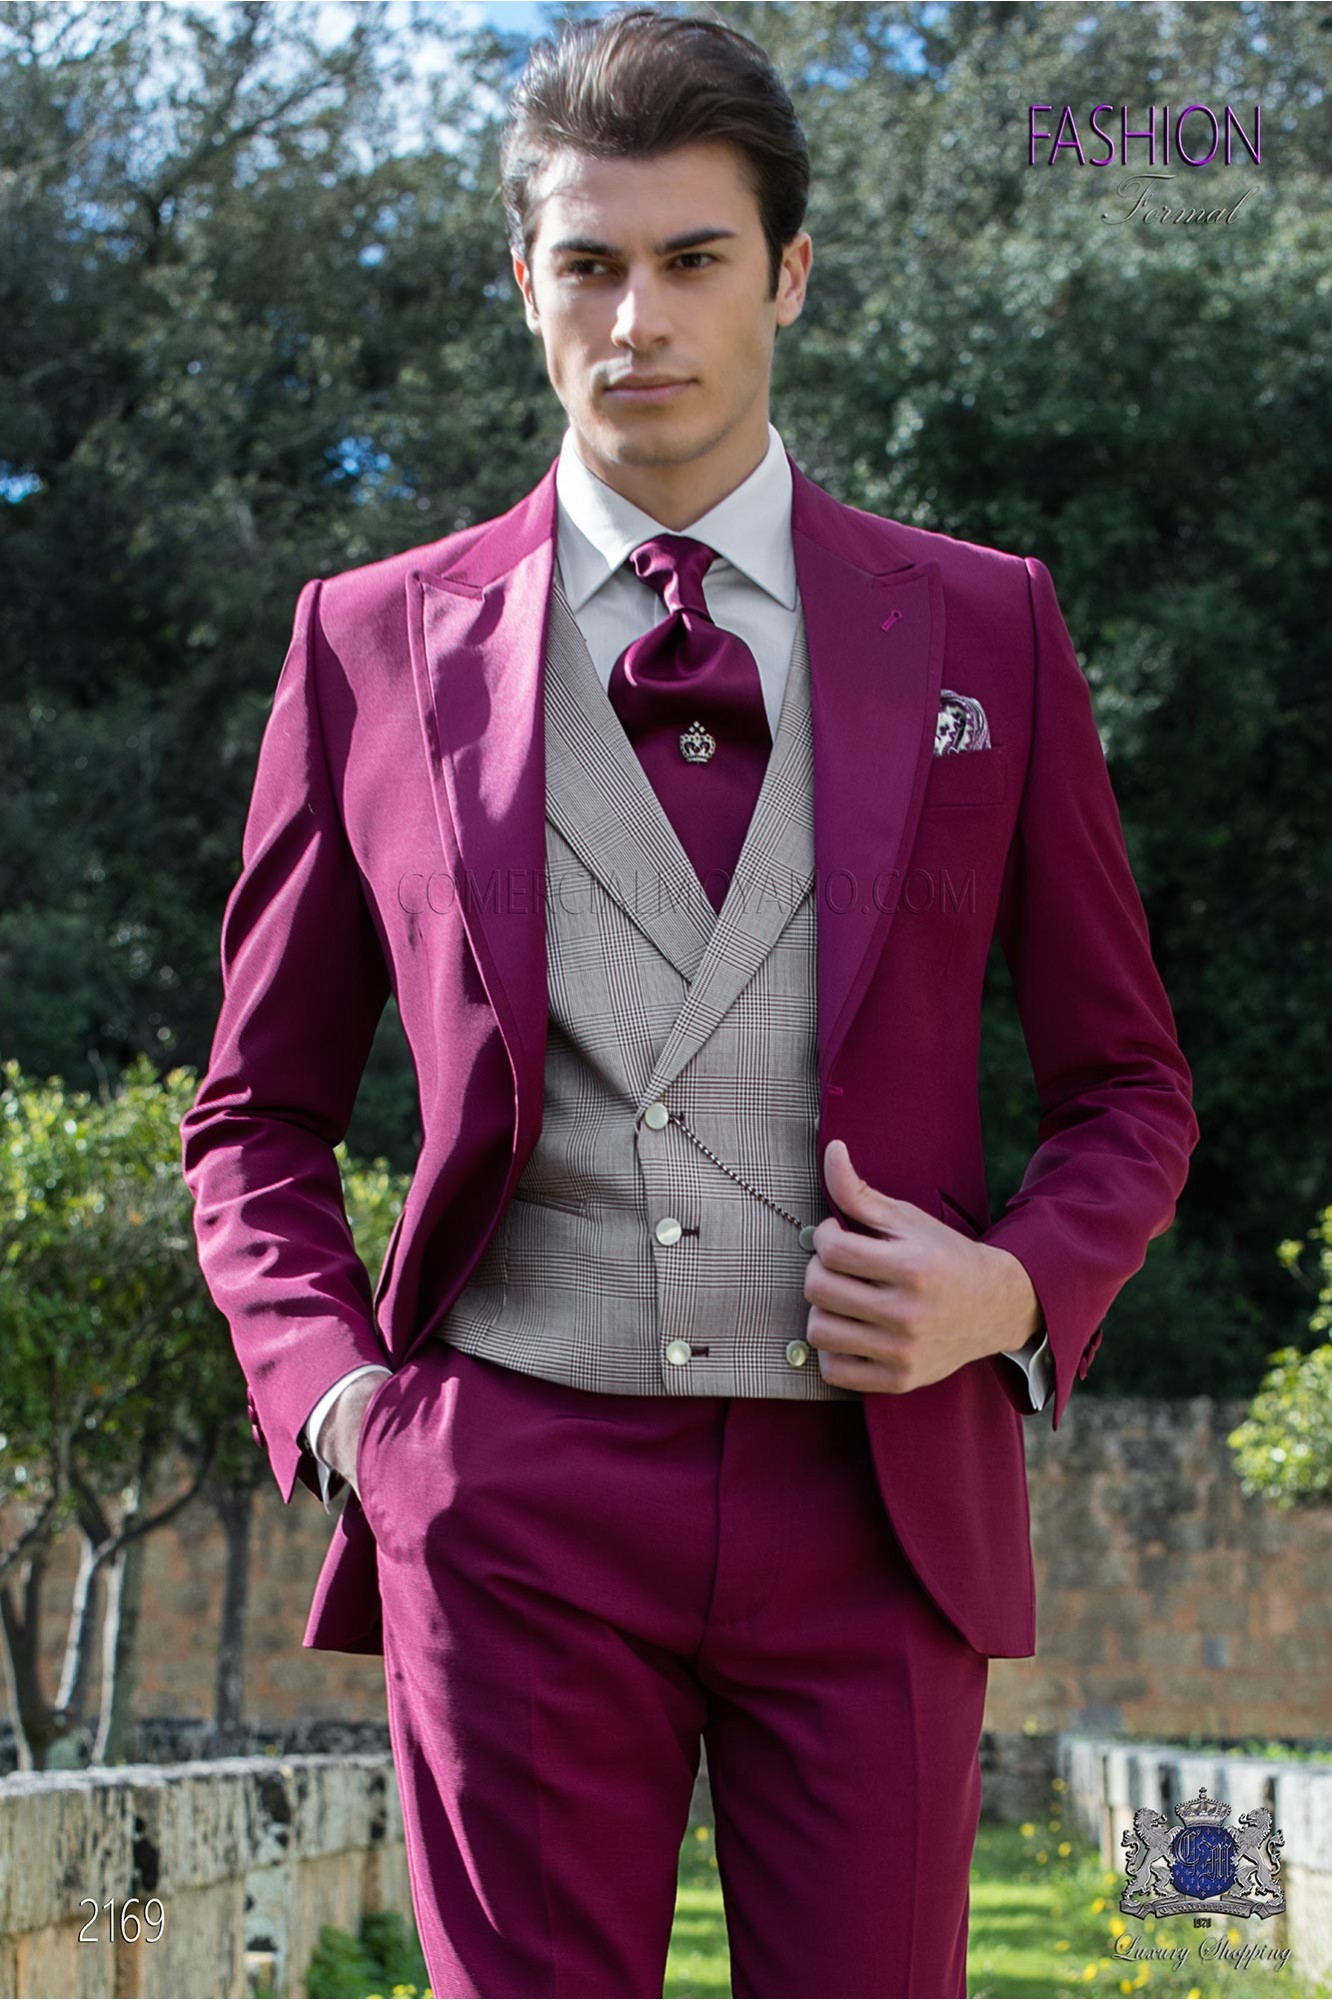 Italian wedding suit Slim stylish cut. Peak lapel with contrast fabric piping. Made from wool and acetate fabric in Burgundy